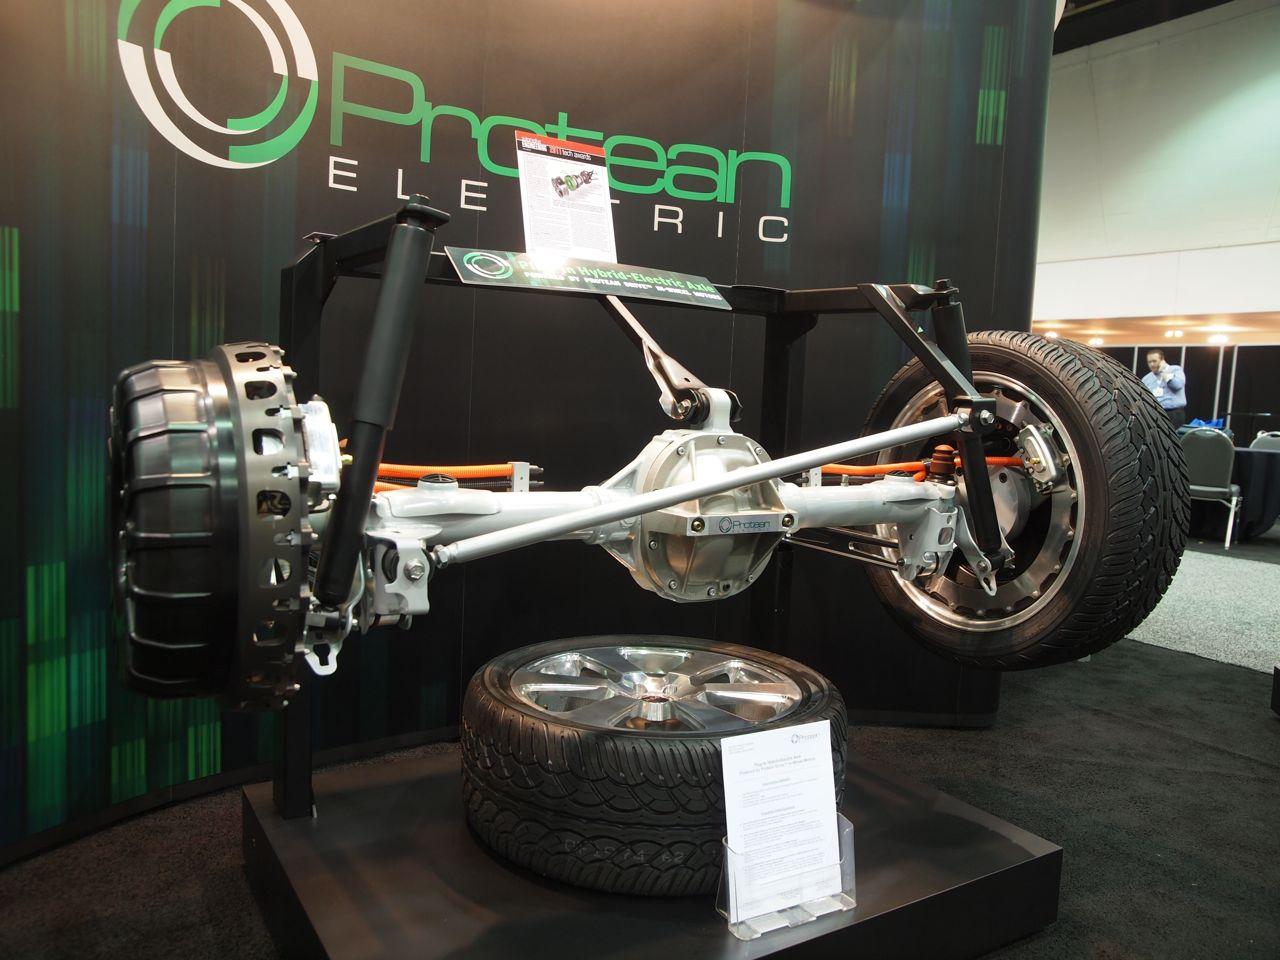 Sae World Congress >> Ford F-150 with Protean In-Wheel Motors Photo Gallery ...